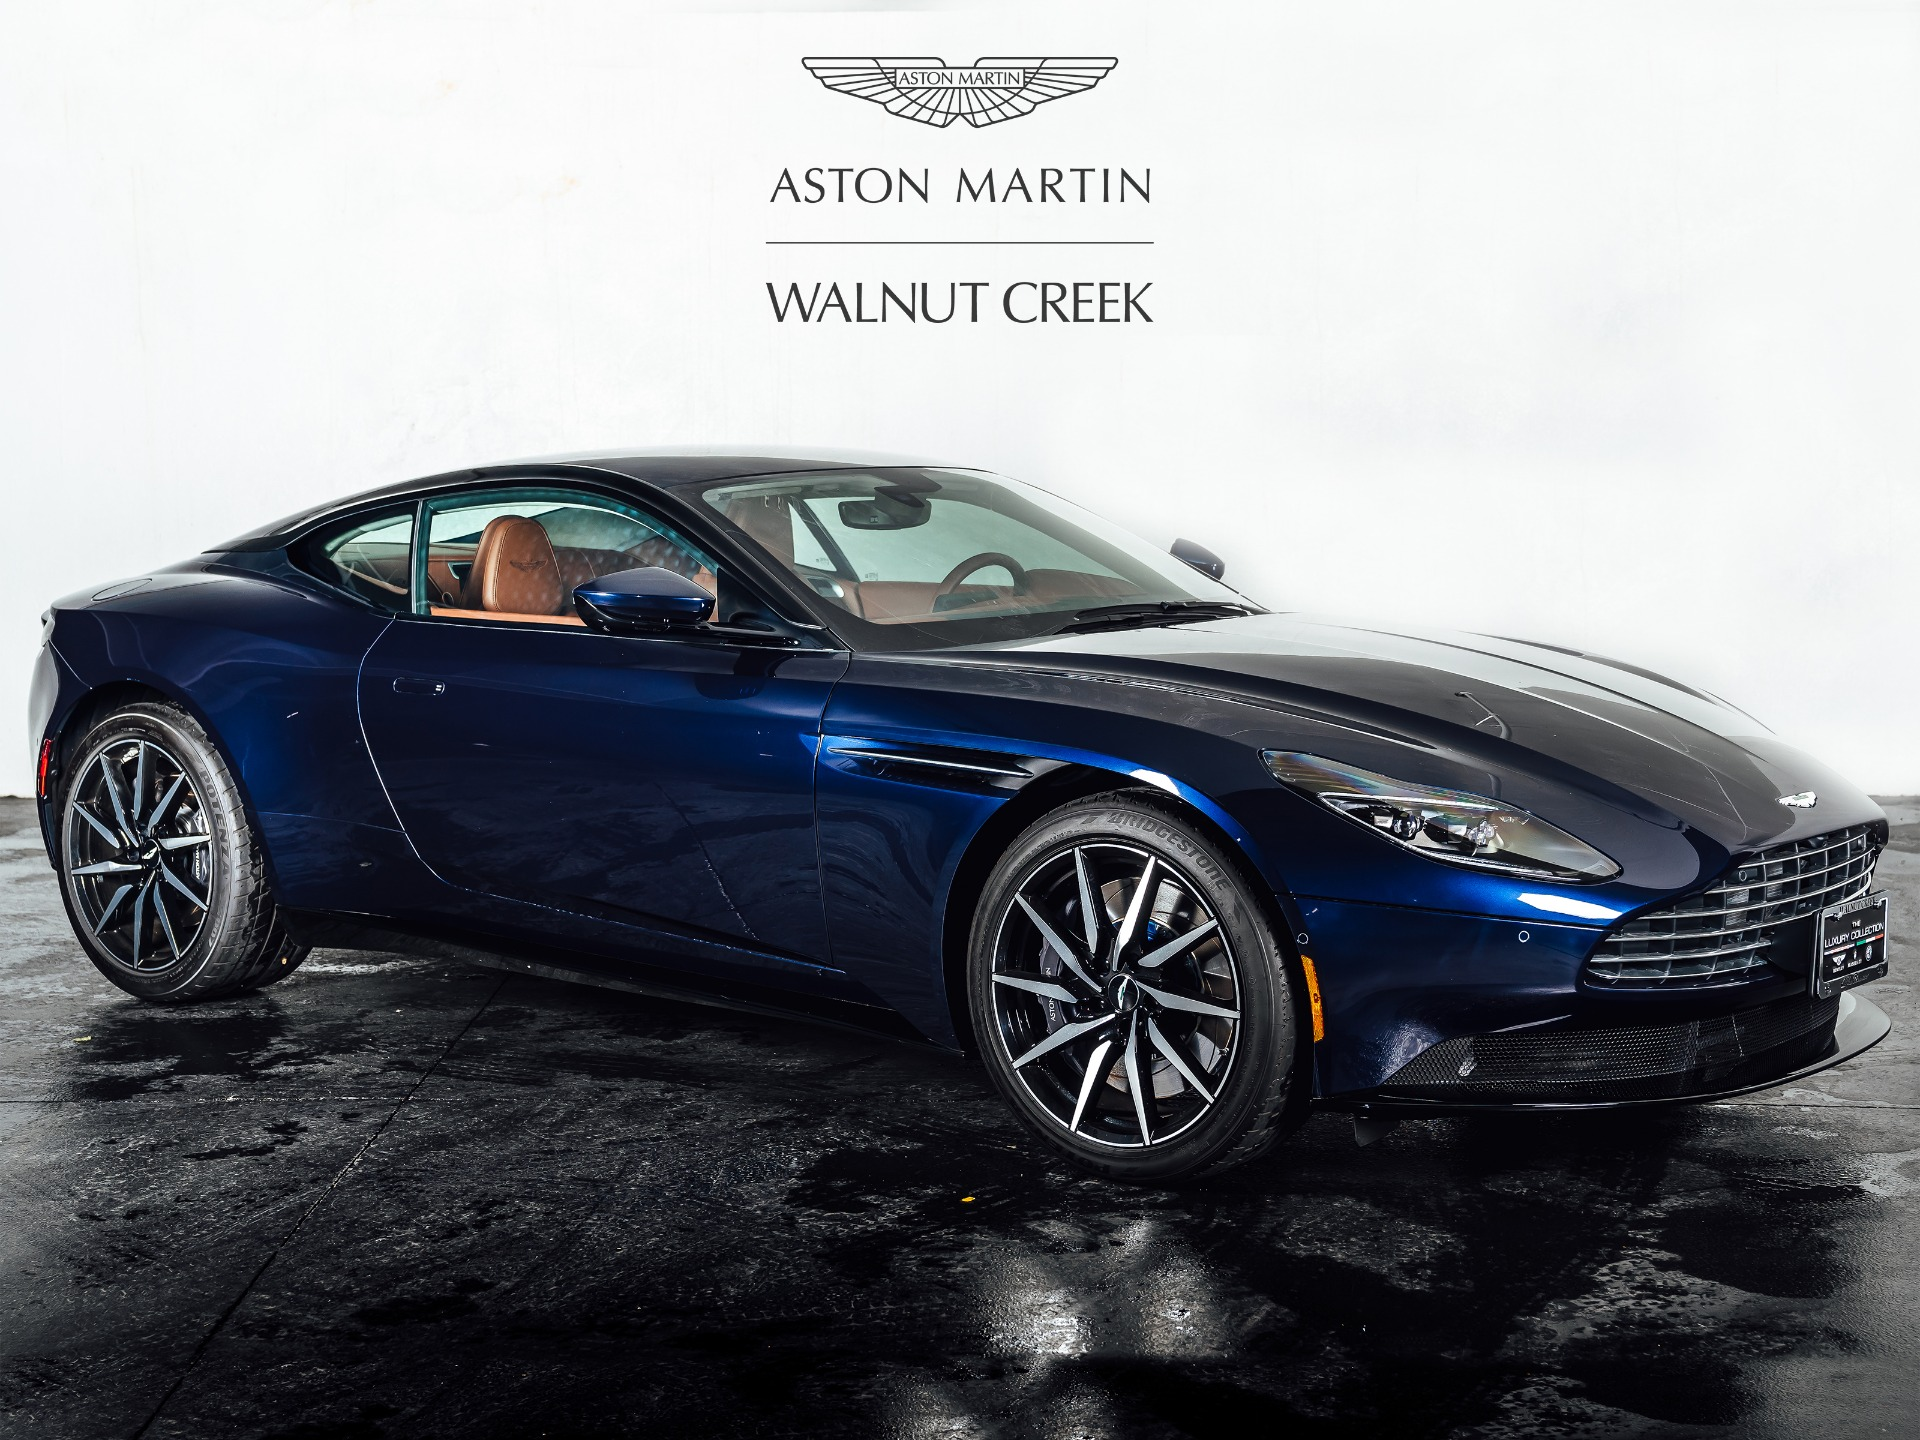 New 2020 Aston Martin Db11 Coupe For Sale 230 361 The Luxury Collection Walnut Creek Stock Aml021